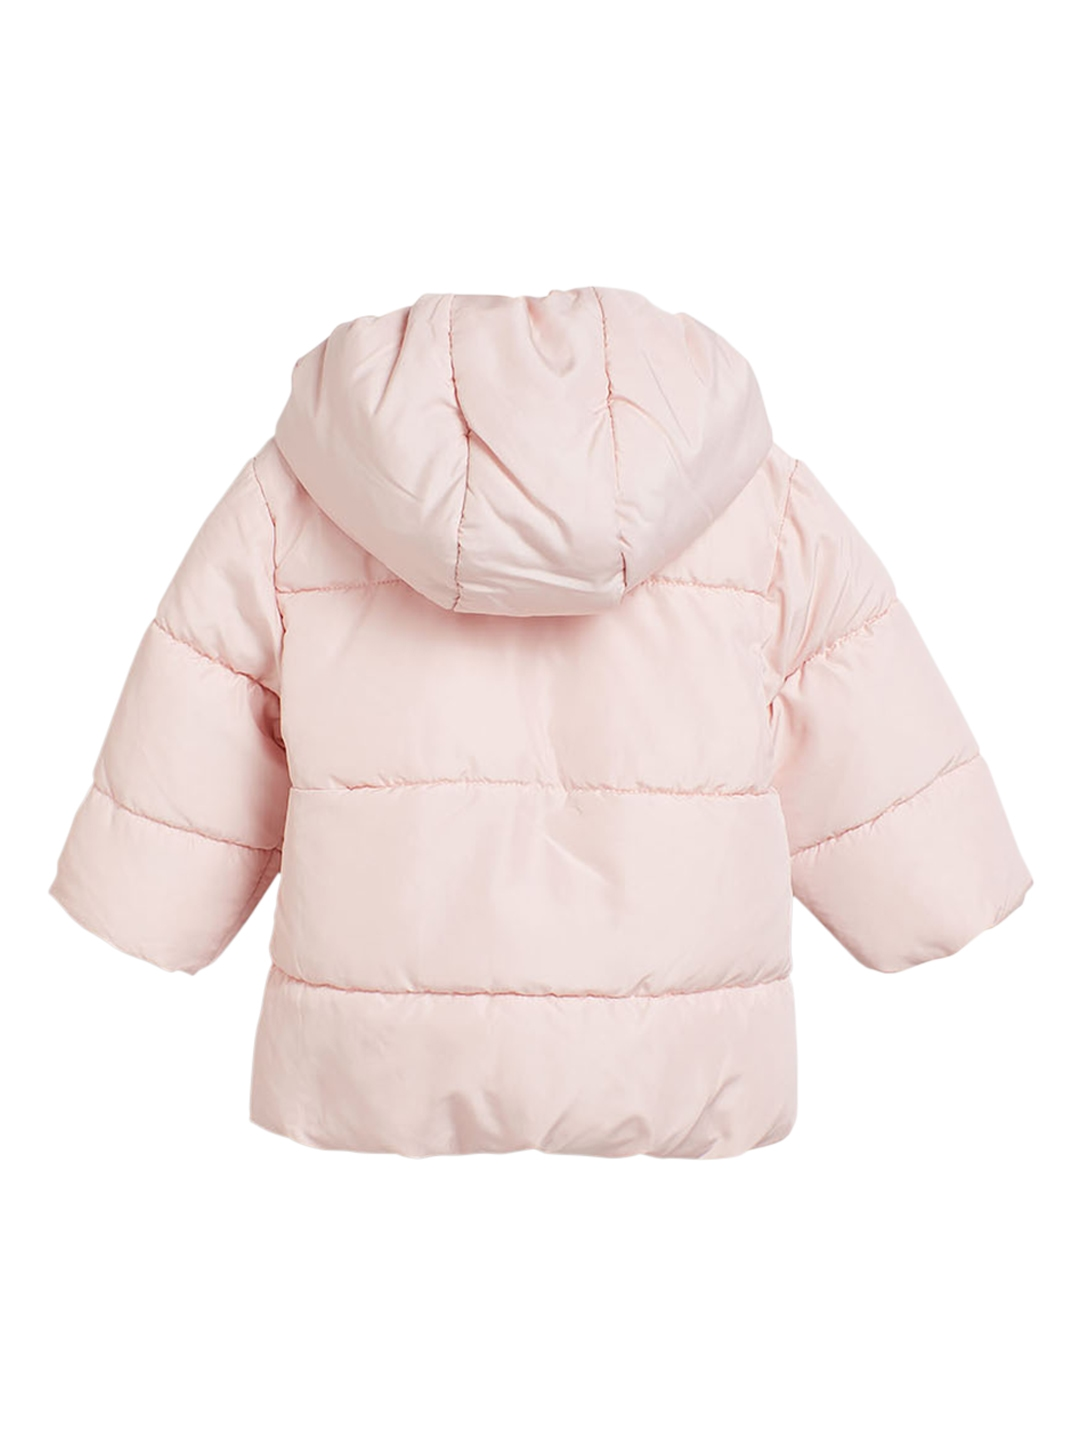 227a5b22f Buy Next Girls Pink Solid Hooded Puffer Jacket - Jackets for Girls ...